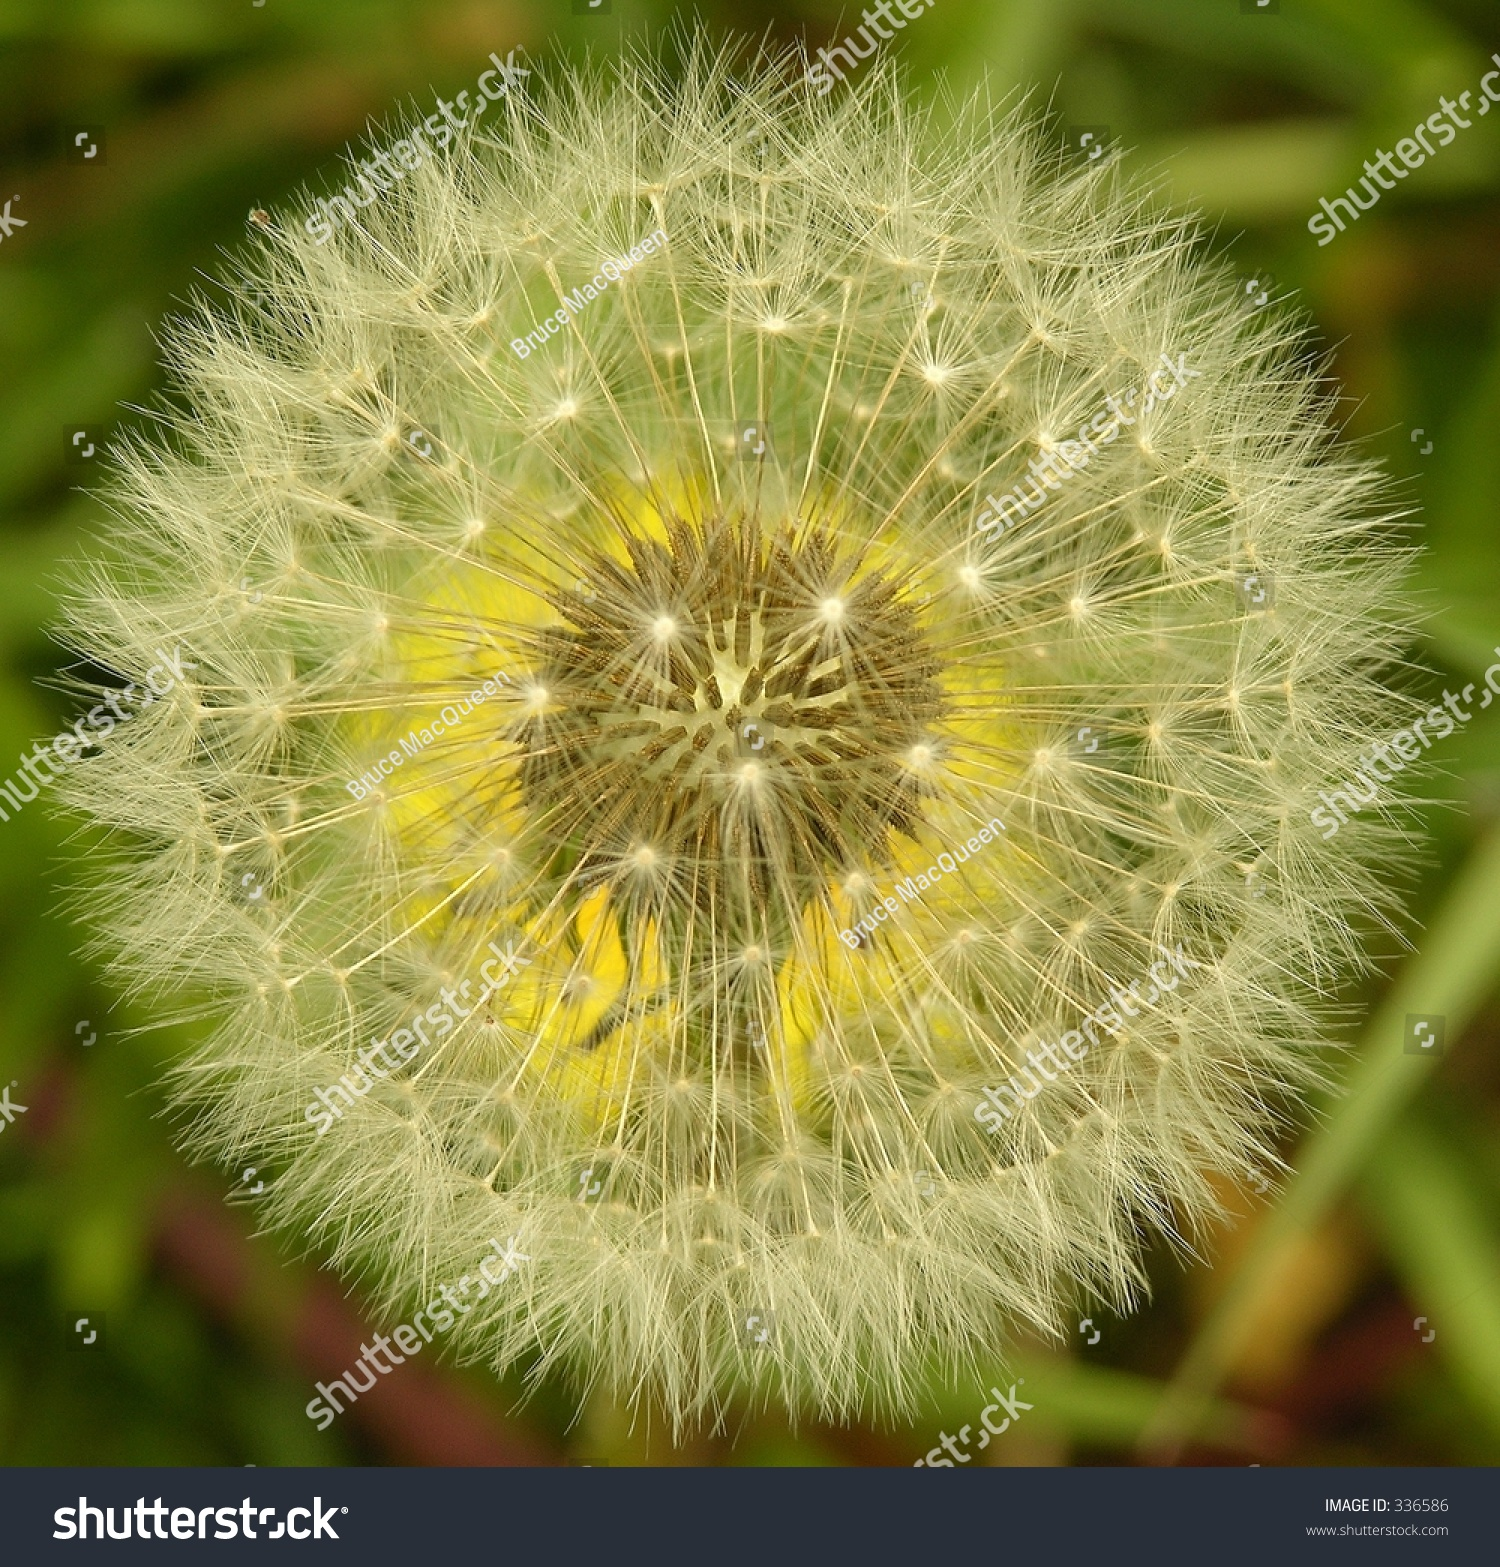 Dandelion Seeds Ready To Spread With The Wind. Stock Photo